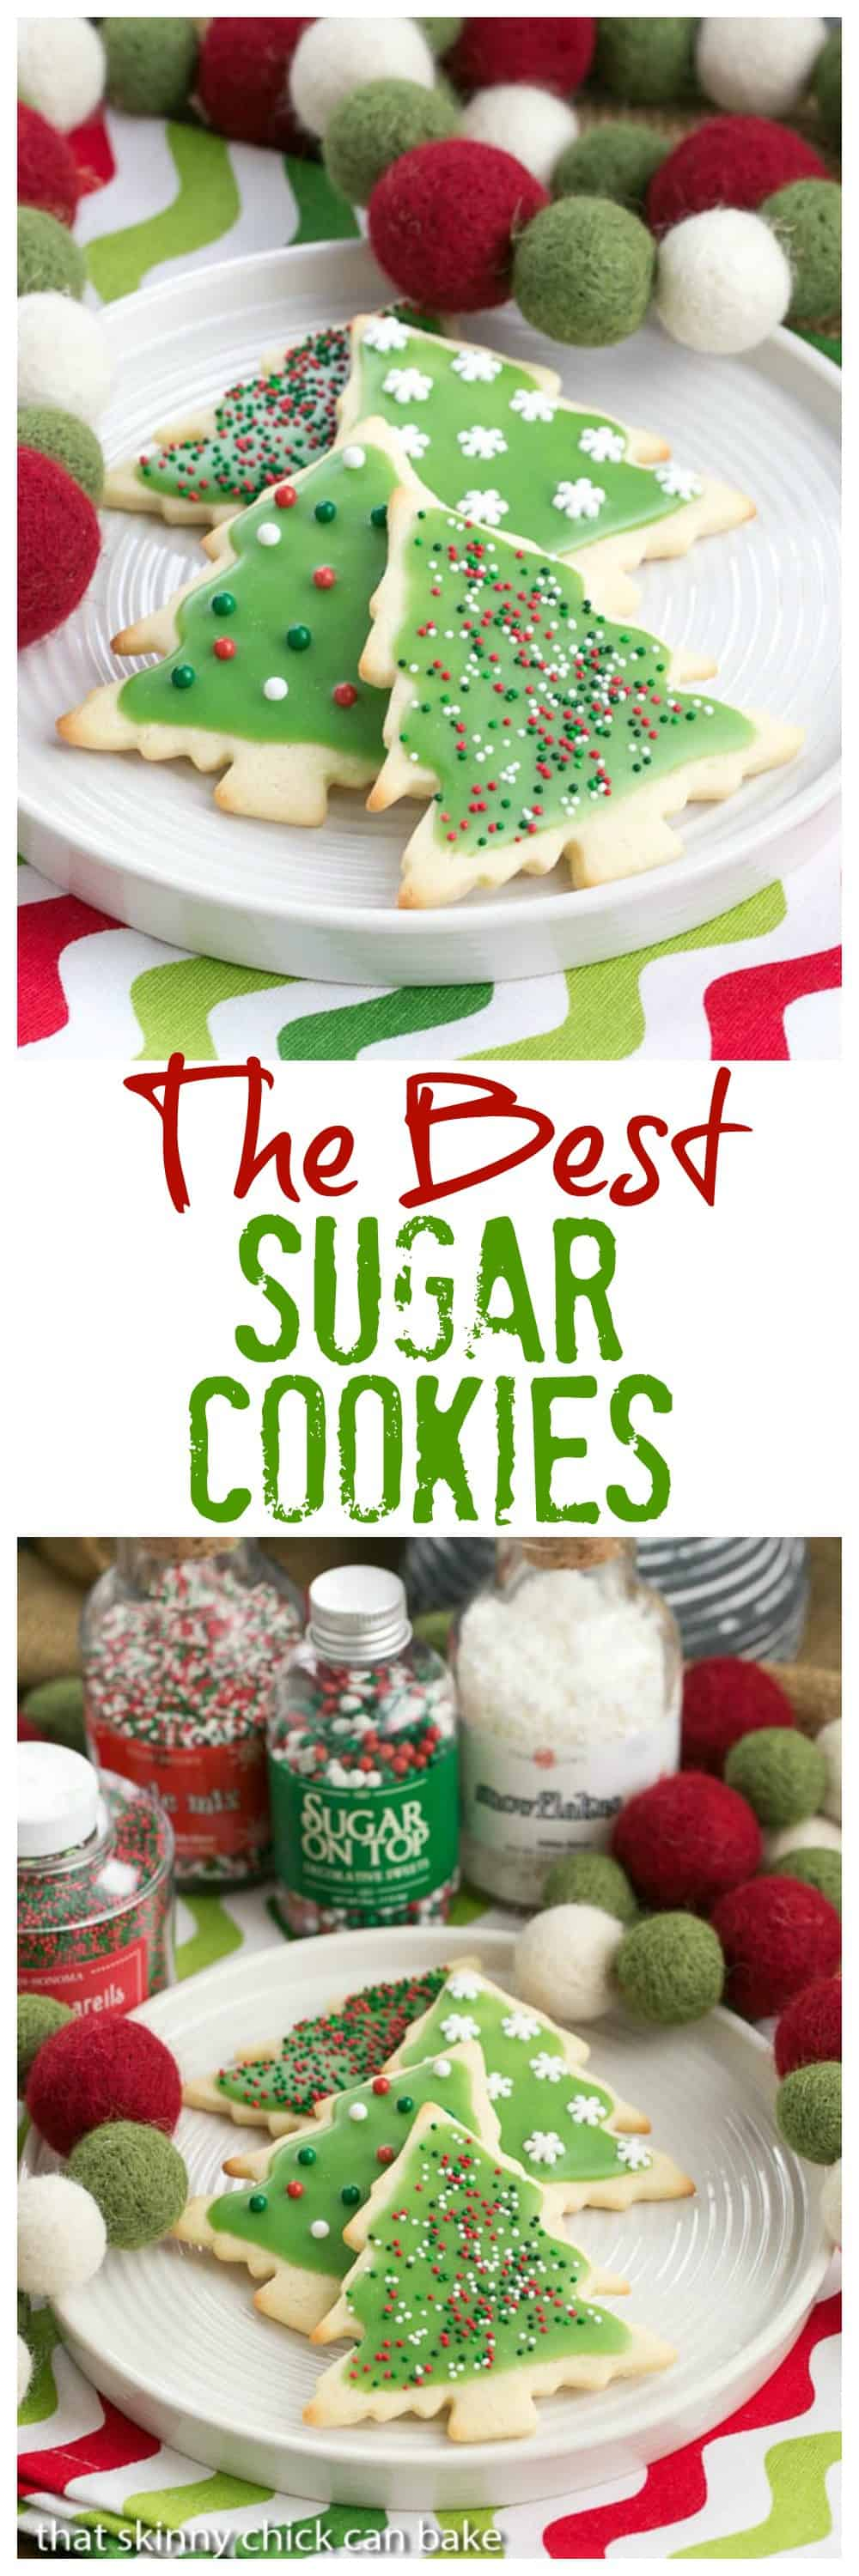 Best Sugar Cookies - Perfect cut-out cookies for all holidays and celebrations #cookies #holidaycookies #sugarcookies